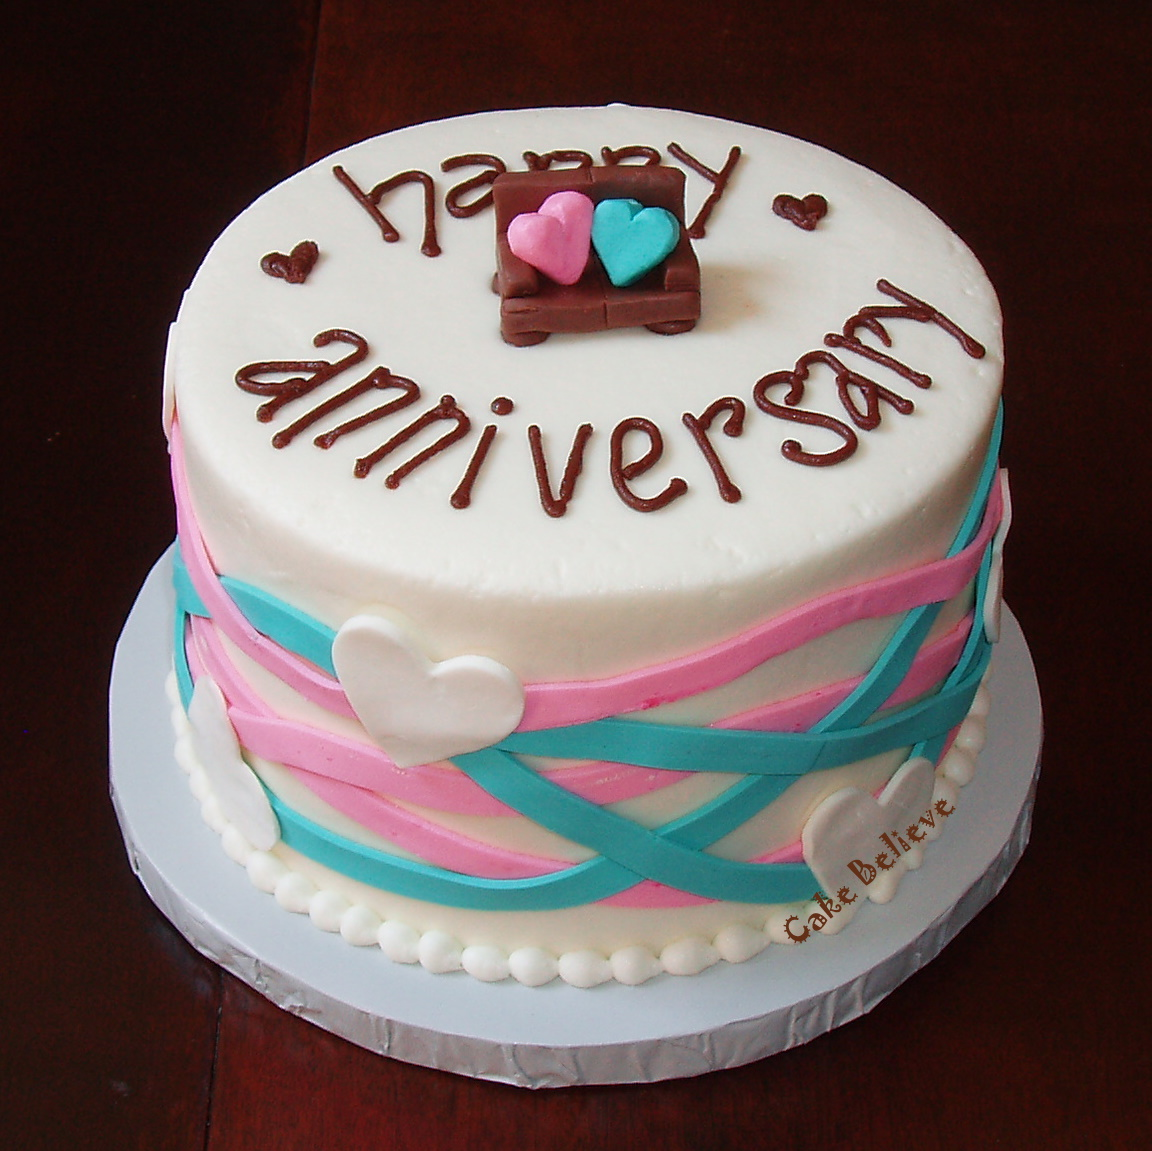 Cake Pics For Marriage Anniversary : Anniversary Cake heydanixo